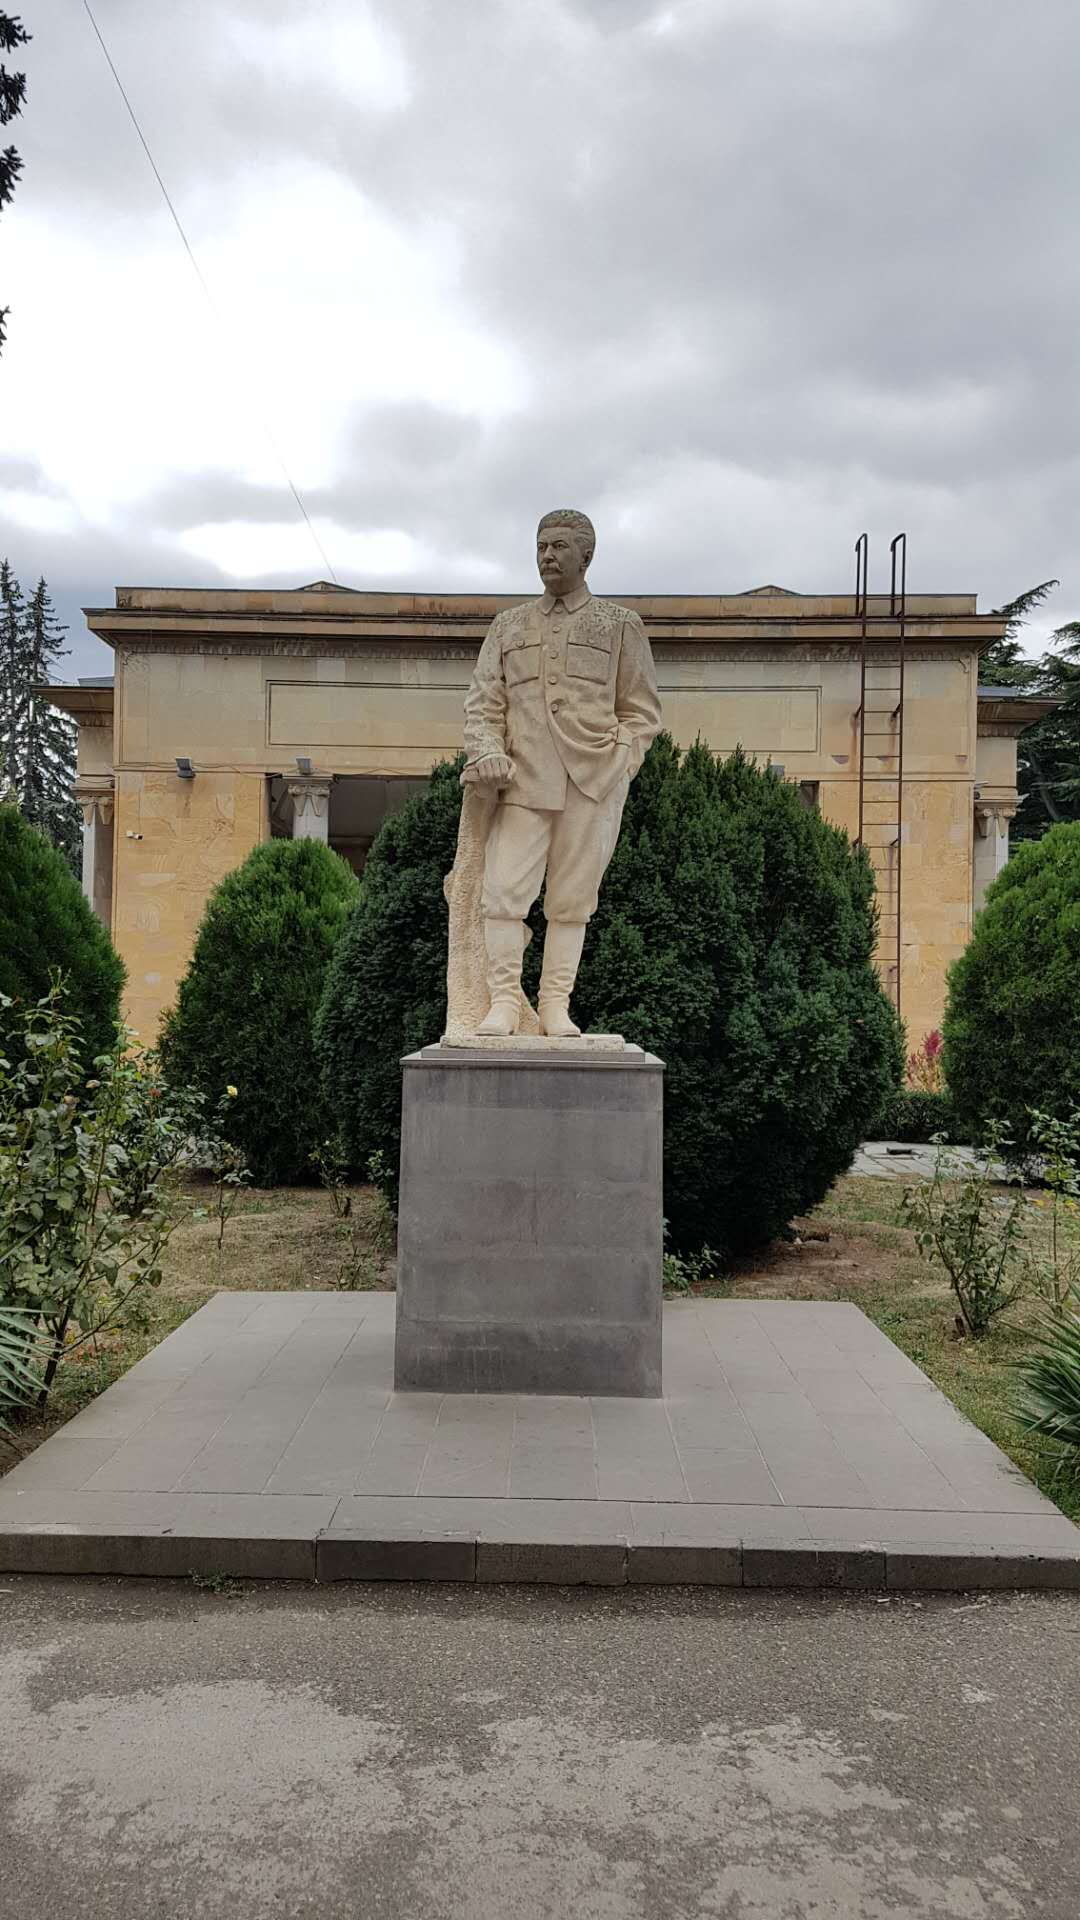 A statue of Stalin in Artsakh